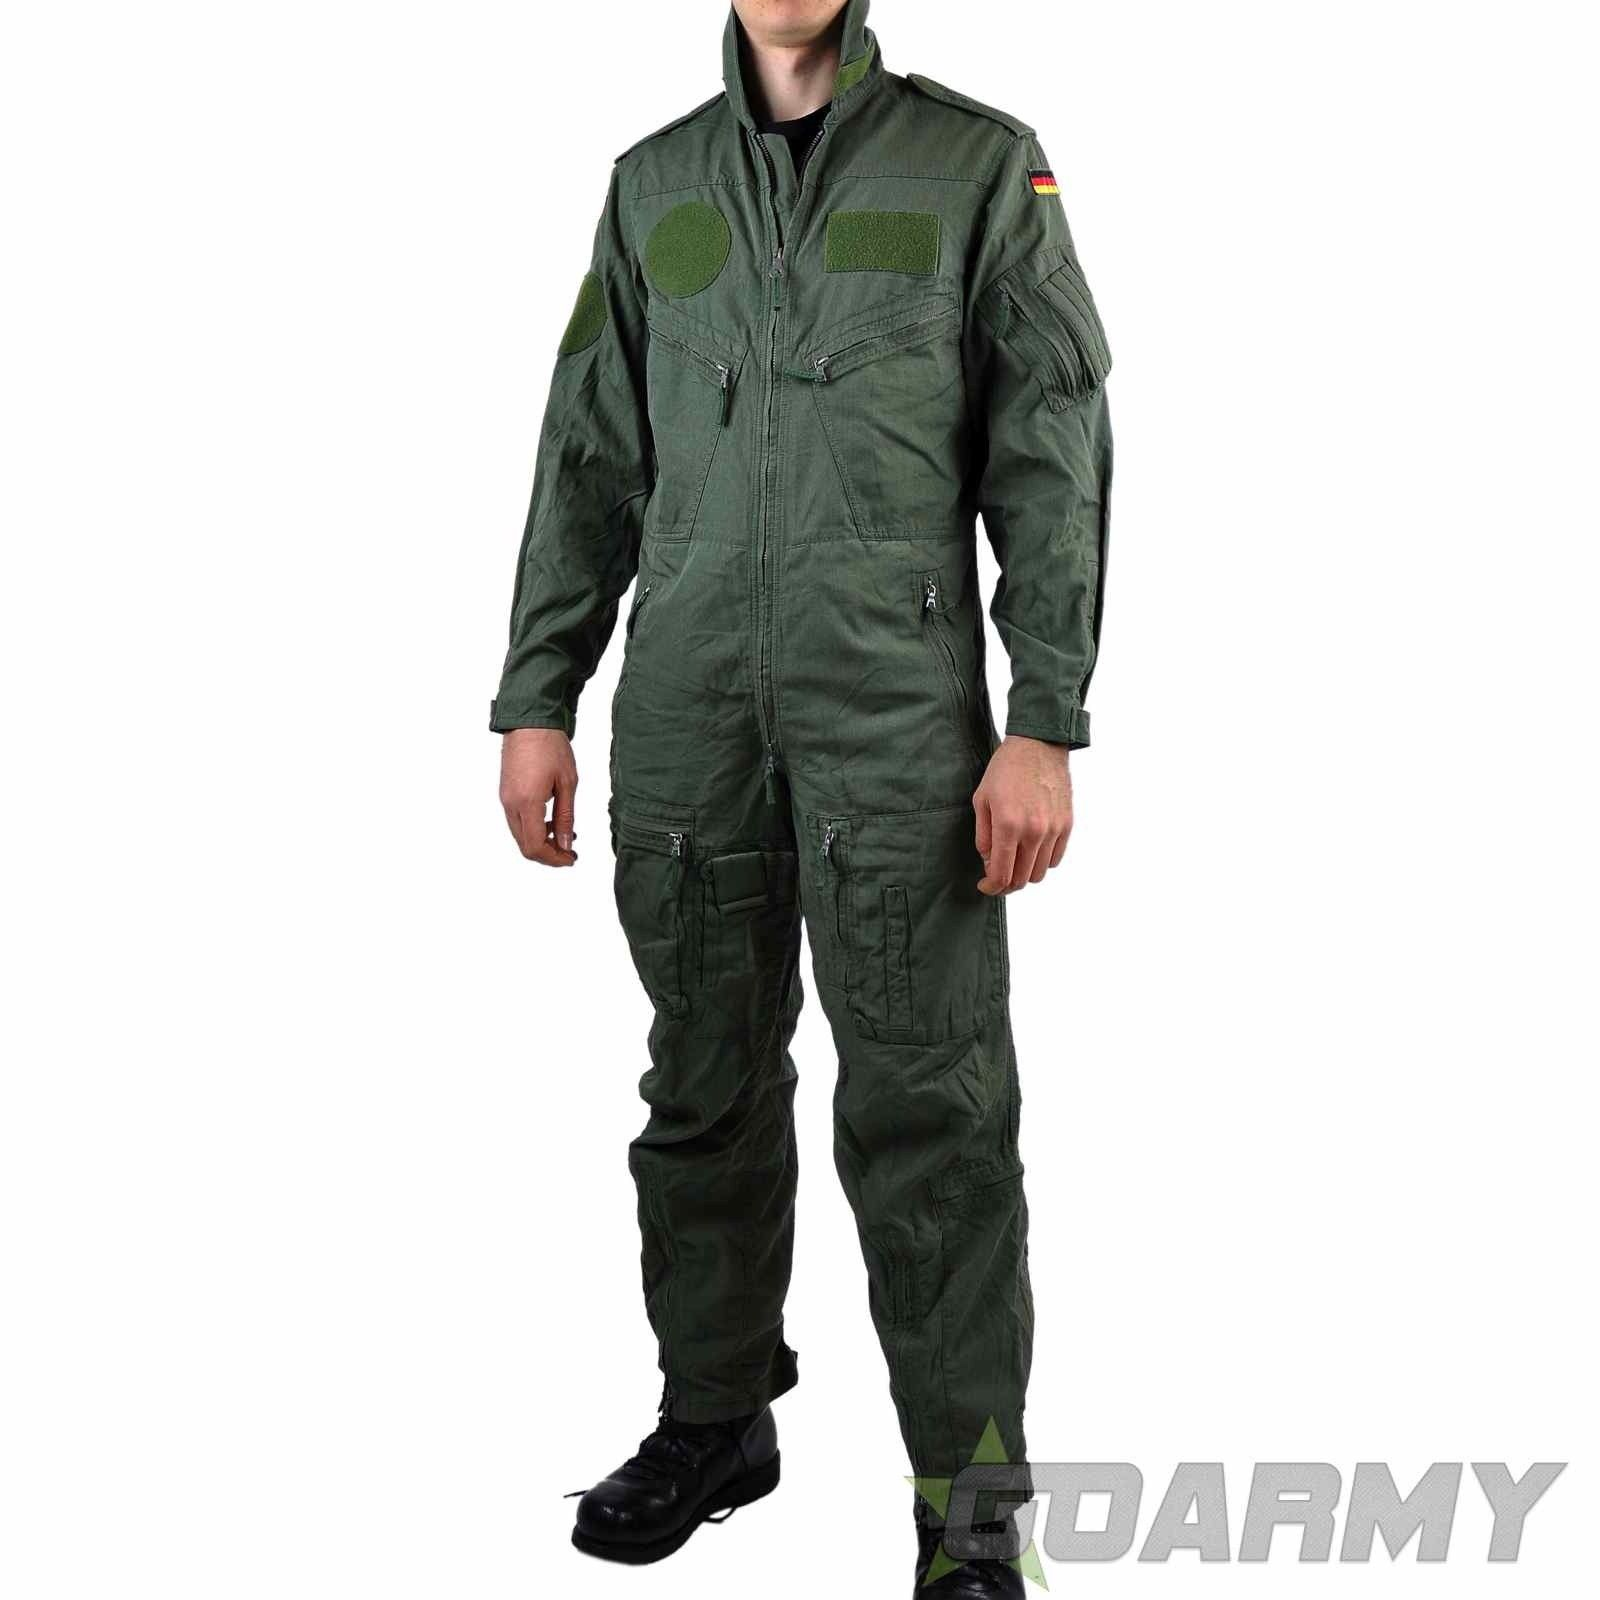 German Airforce Flight Suit Olive  e9b8a8075b3